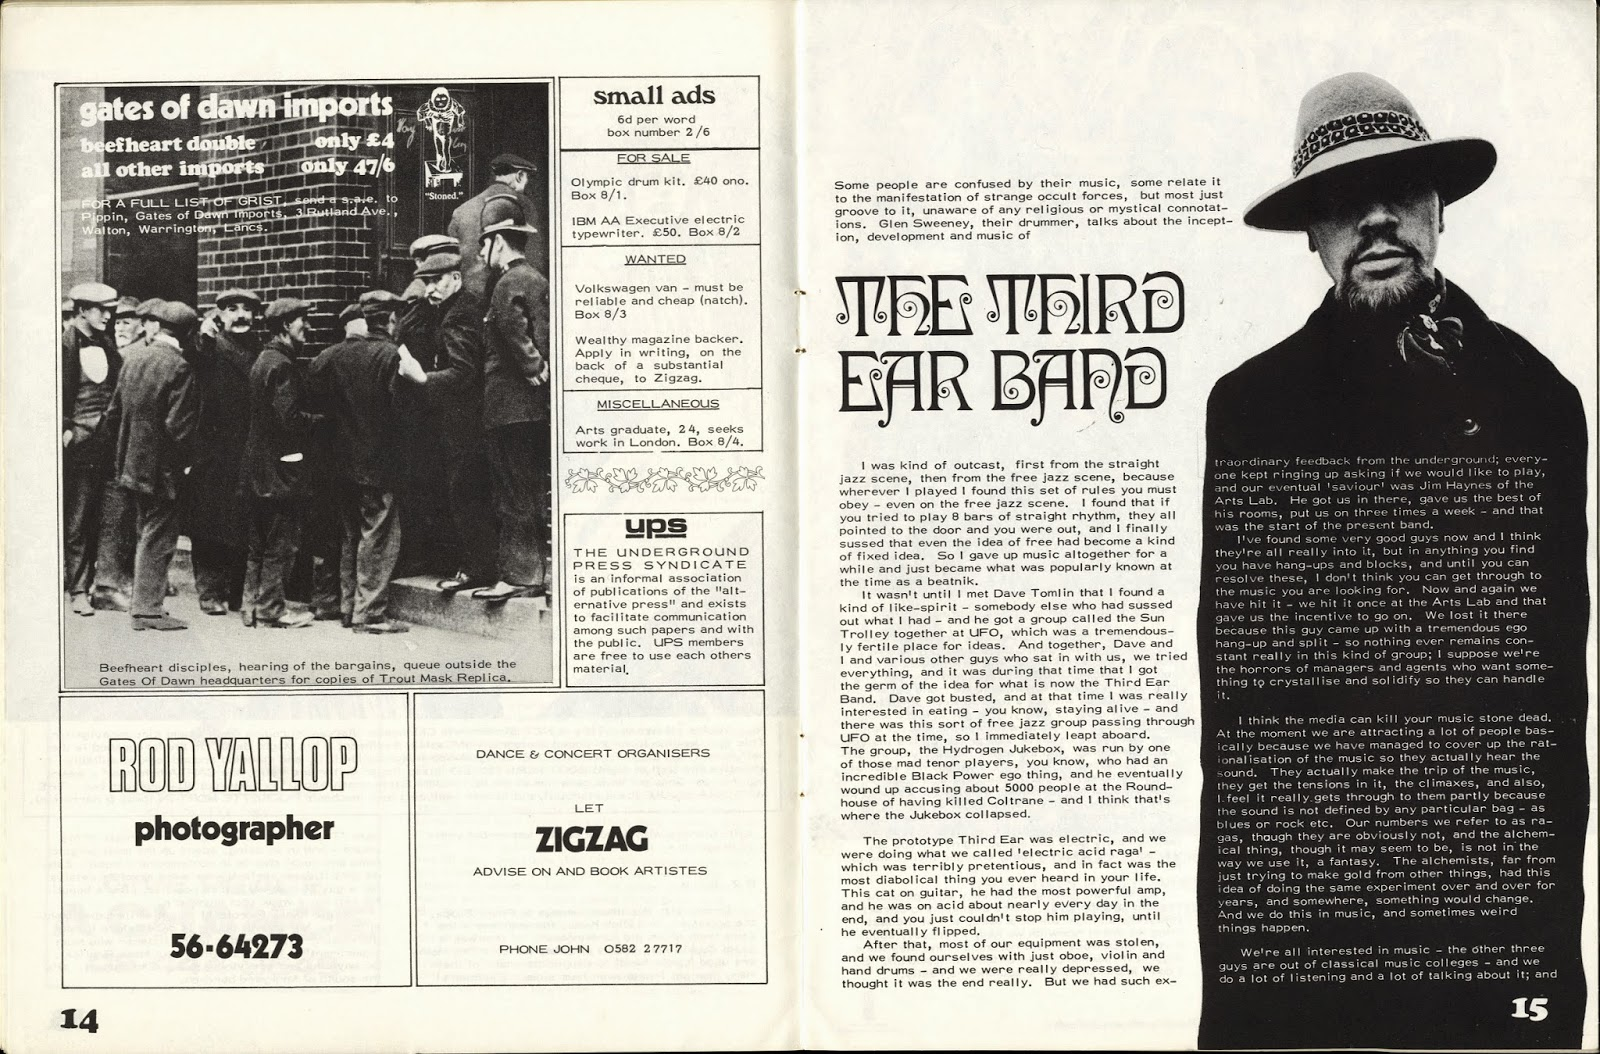 Ghettoraga glen sweeney talks about the teb music on zigzag 4 note in the same issue also an harvest ad for alchemy edgar brouthon bands wasa wasa based on a picture of stonehenge malvernweather